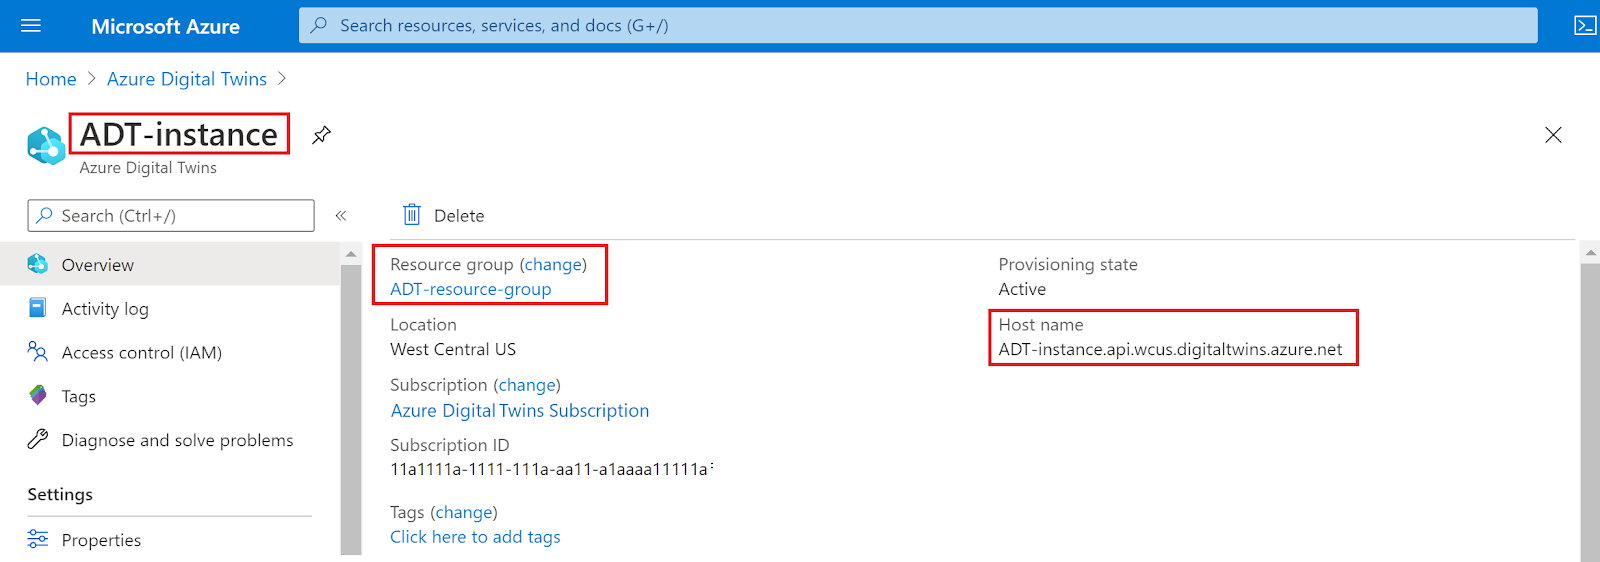 Highlighting the important values from the instance's Overview page